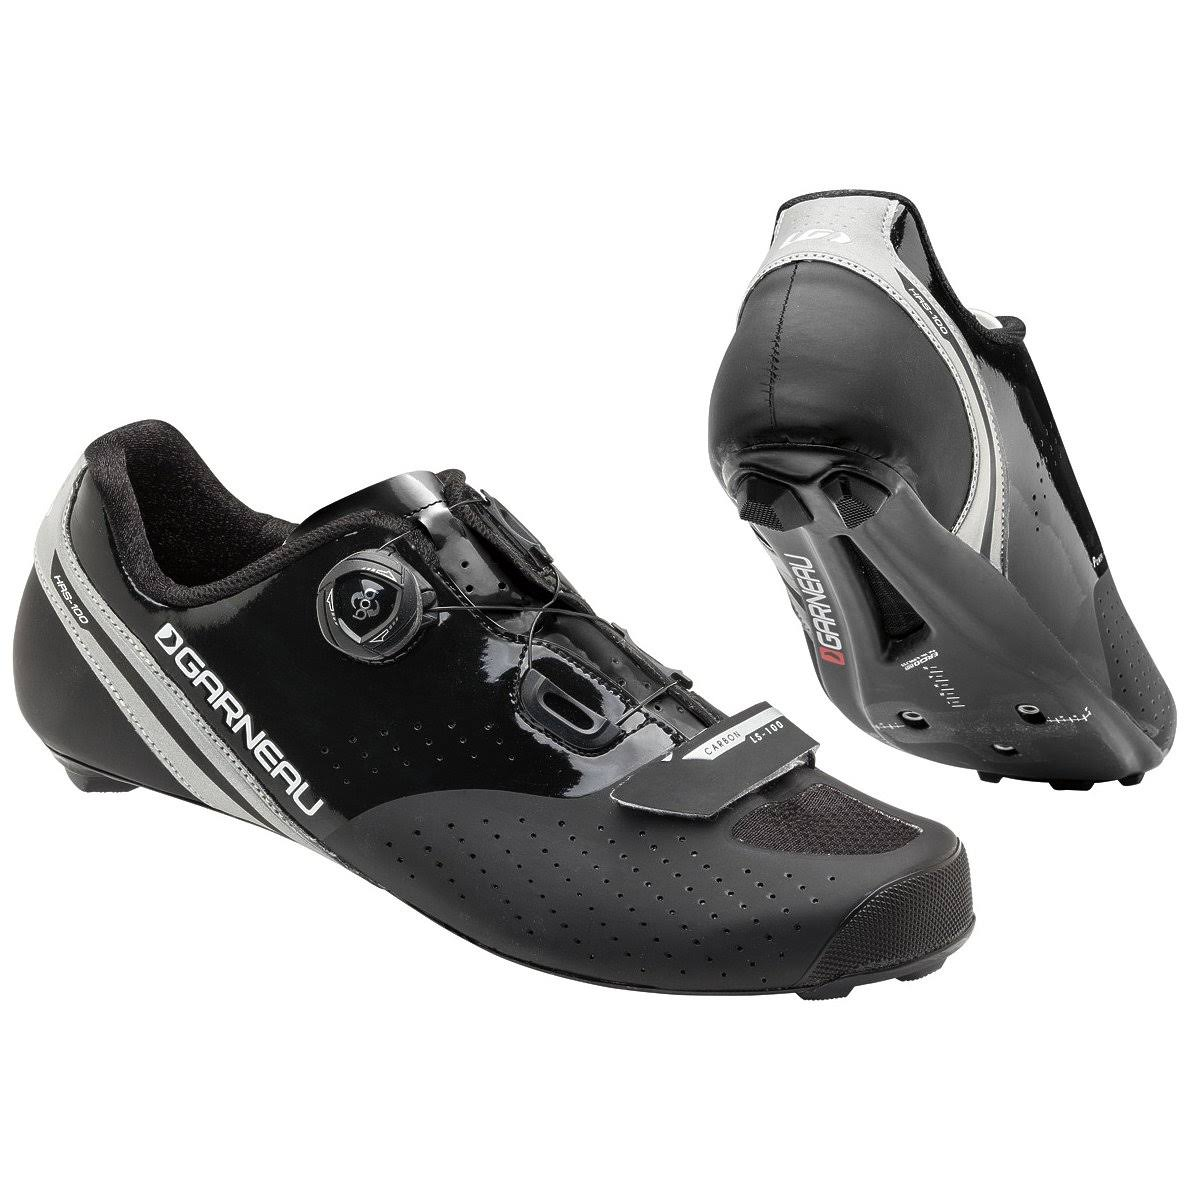 Louis Garneau Carbon LS-100 II Men's Shoe: Black - 42